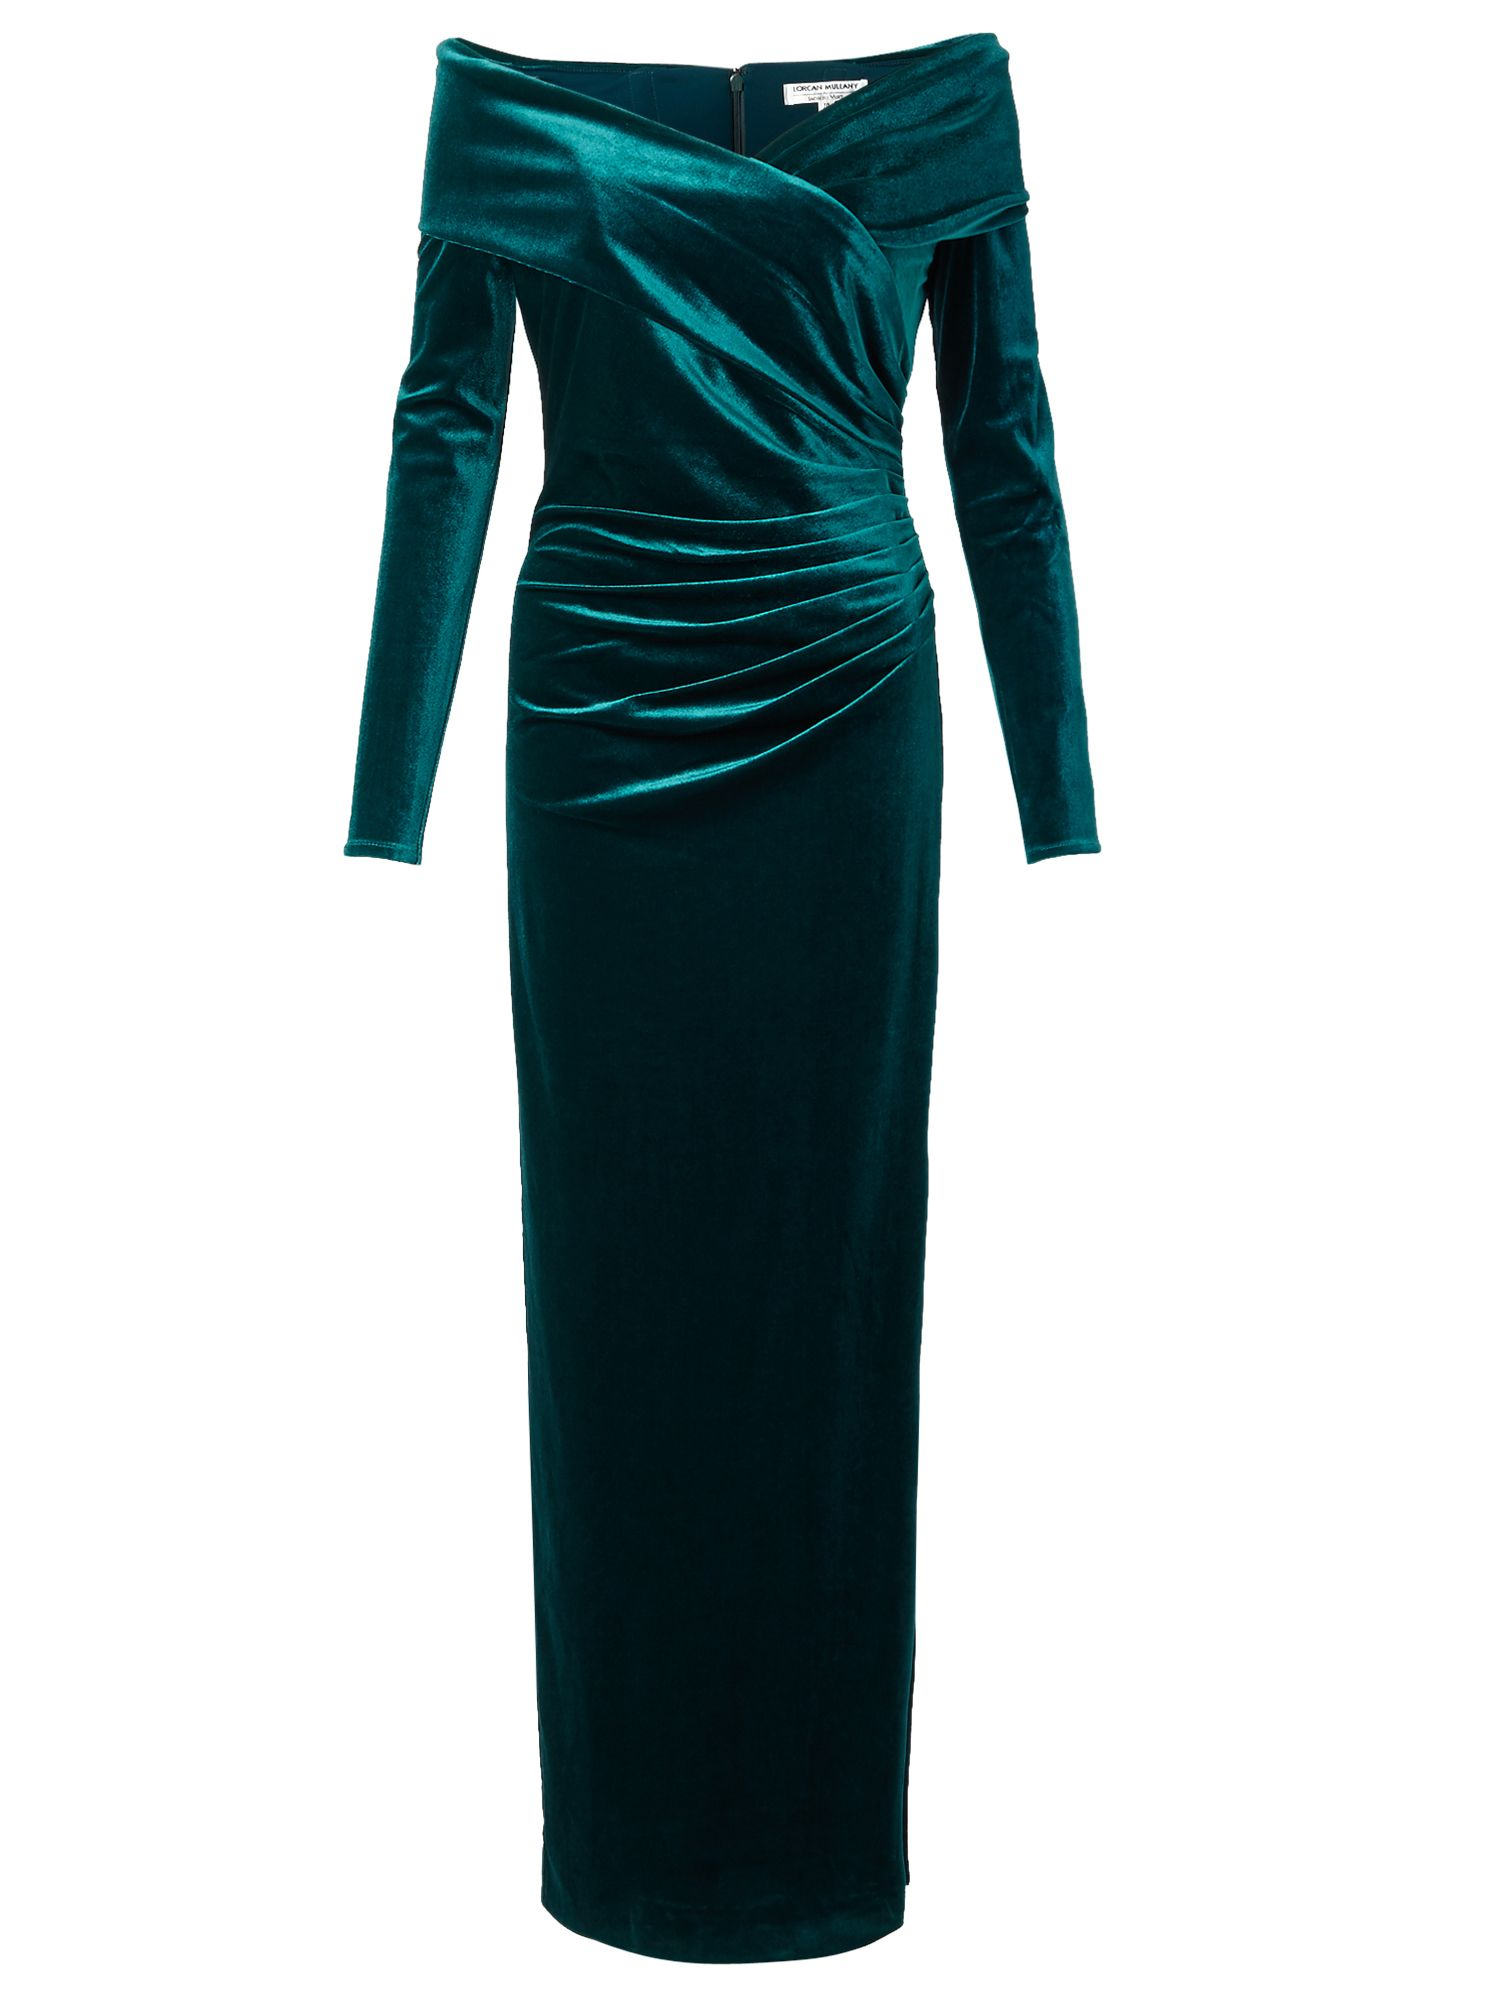 Jacques Vert Velvet Bardot Long Dress Green £399.00 AT vintagedancer.com